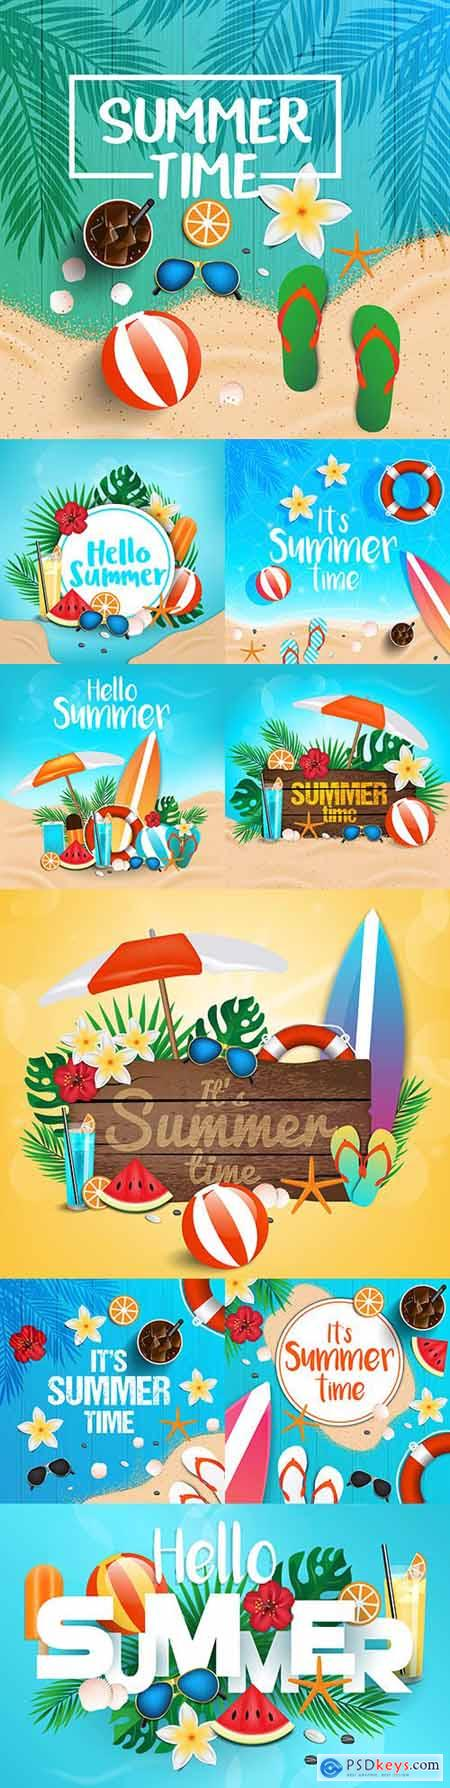 Hello summer holidays tropical background